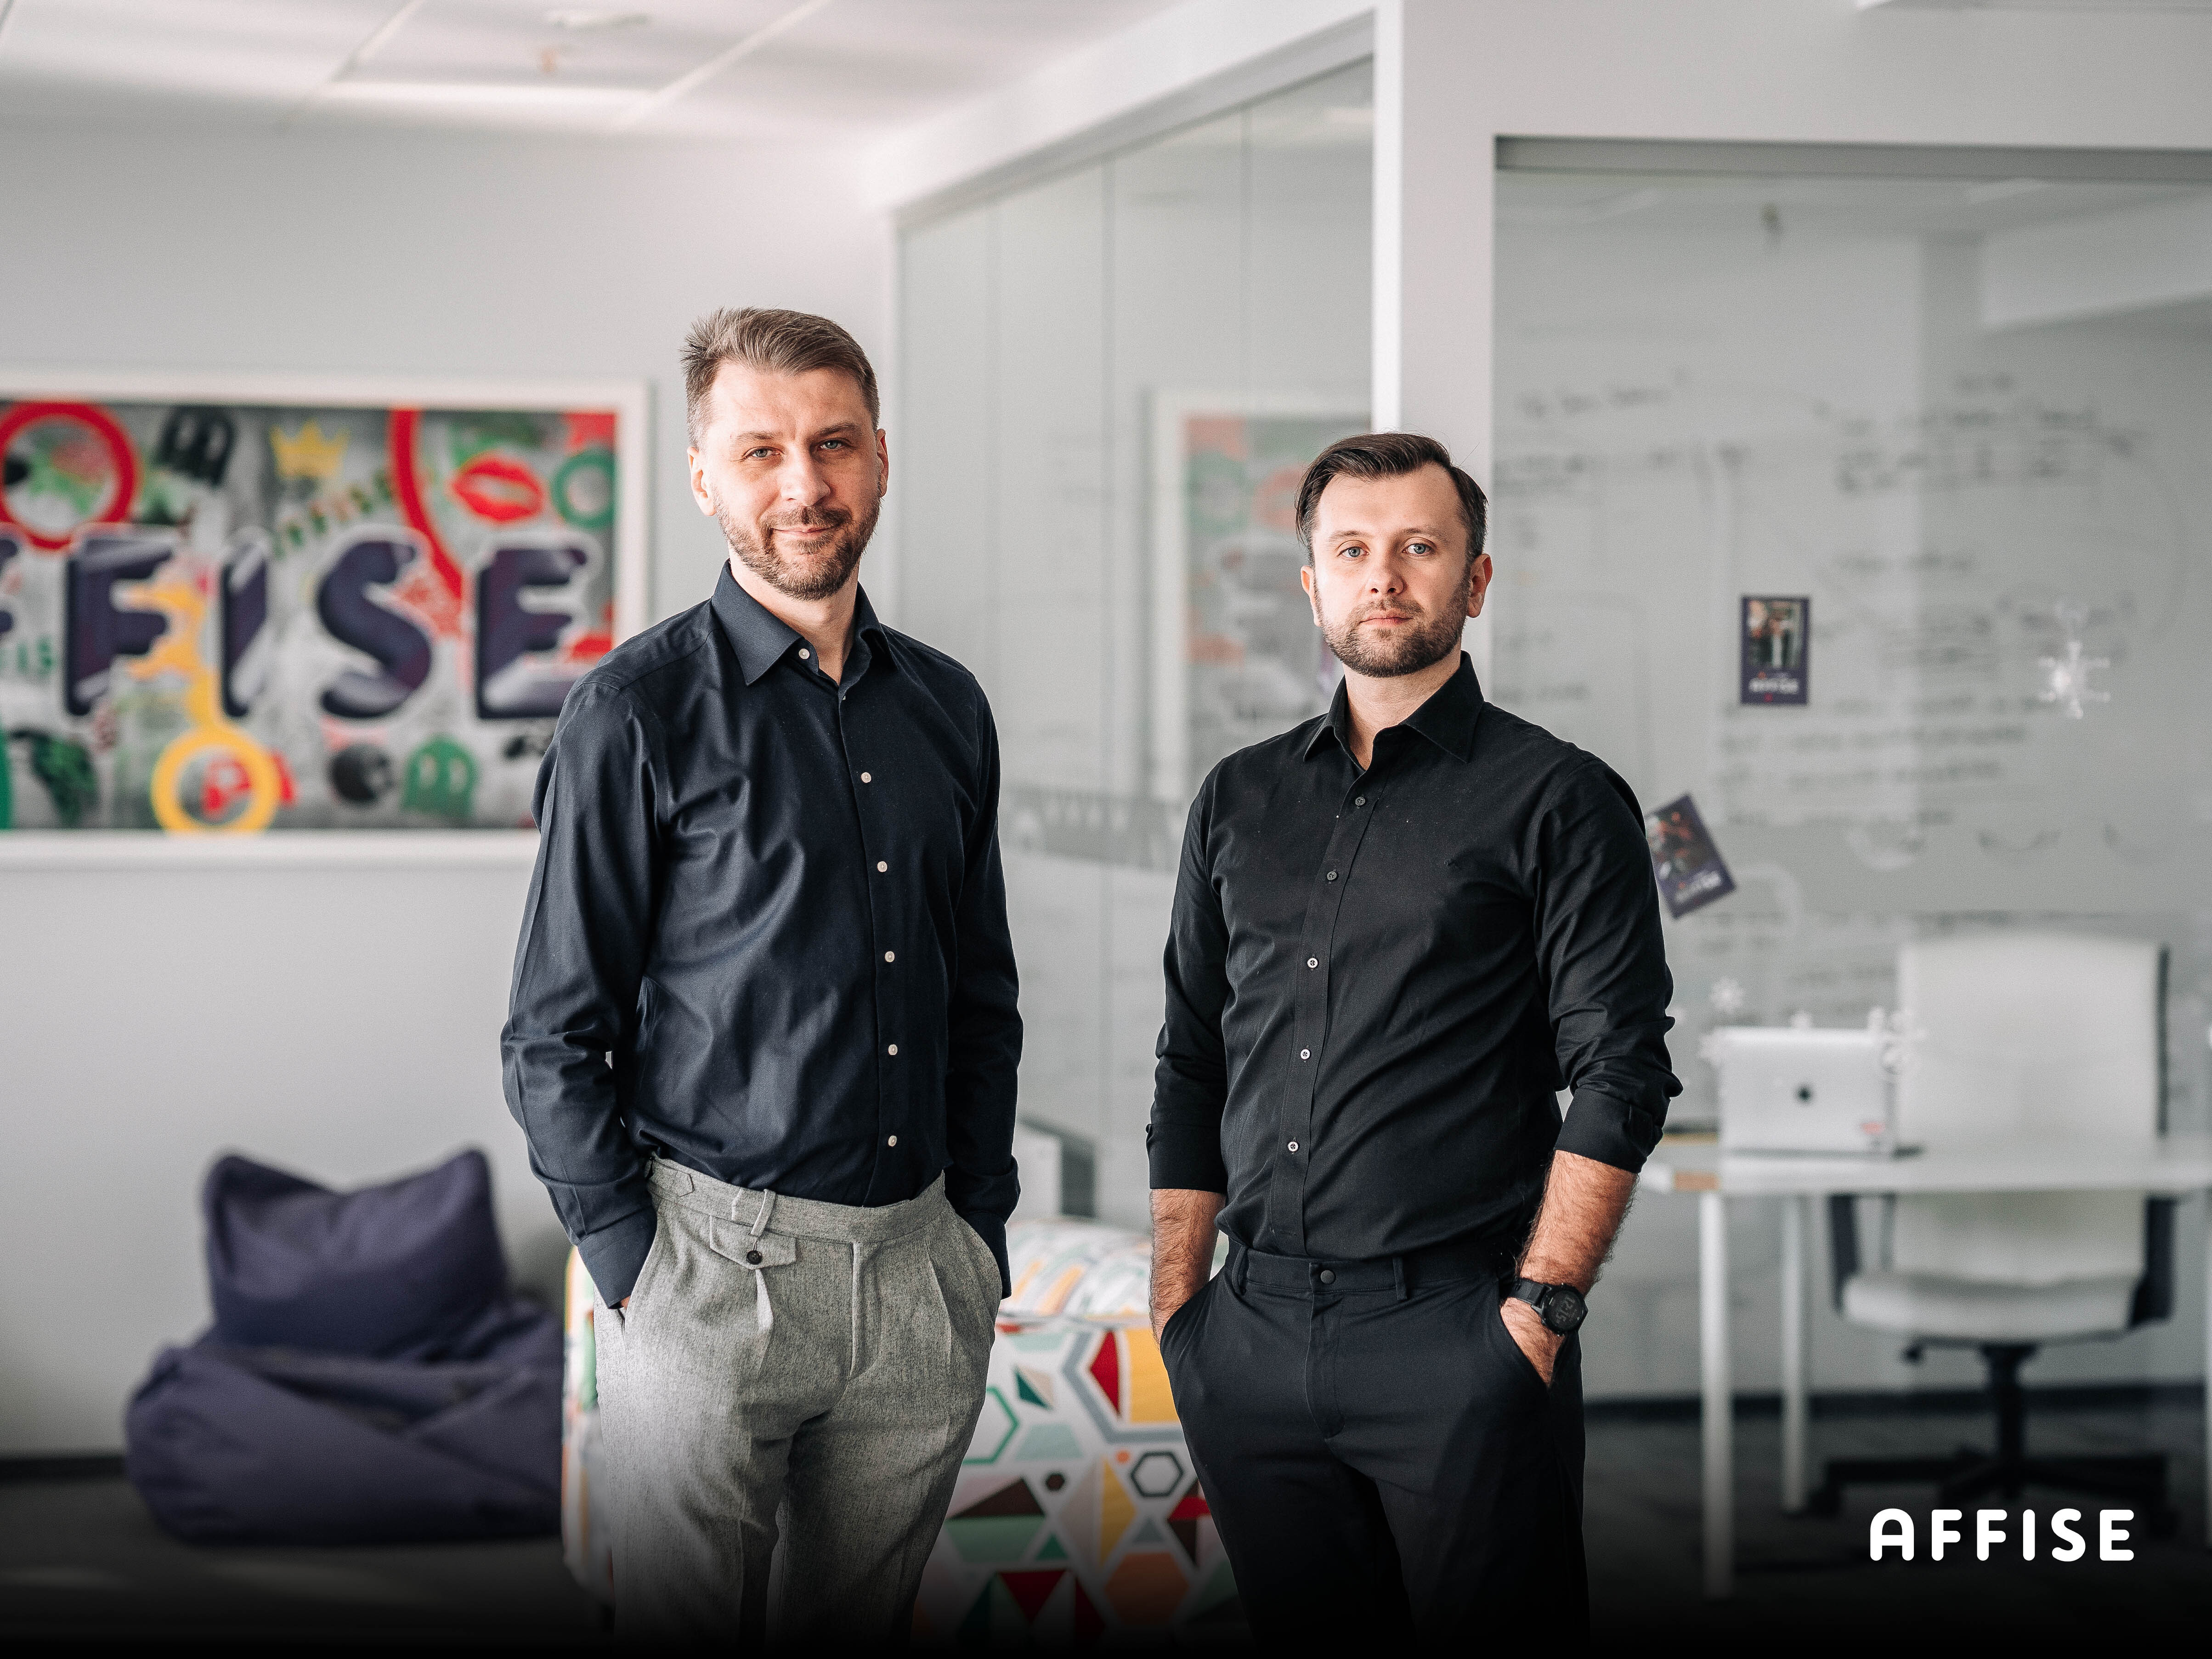 Affise Raises $8M Series A to Make Partnerships a Measurable and Transparent Marketing Channel